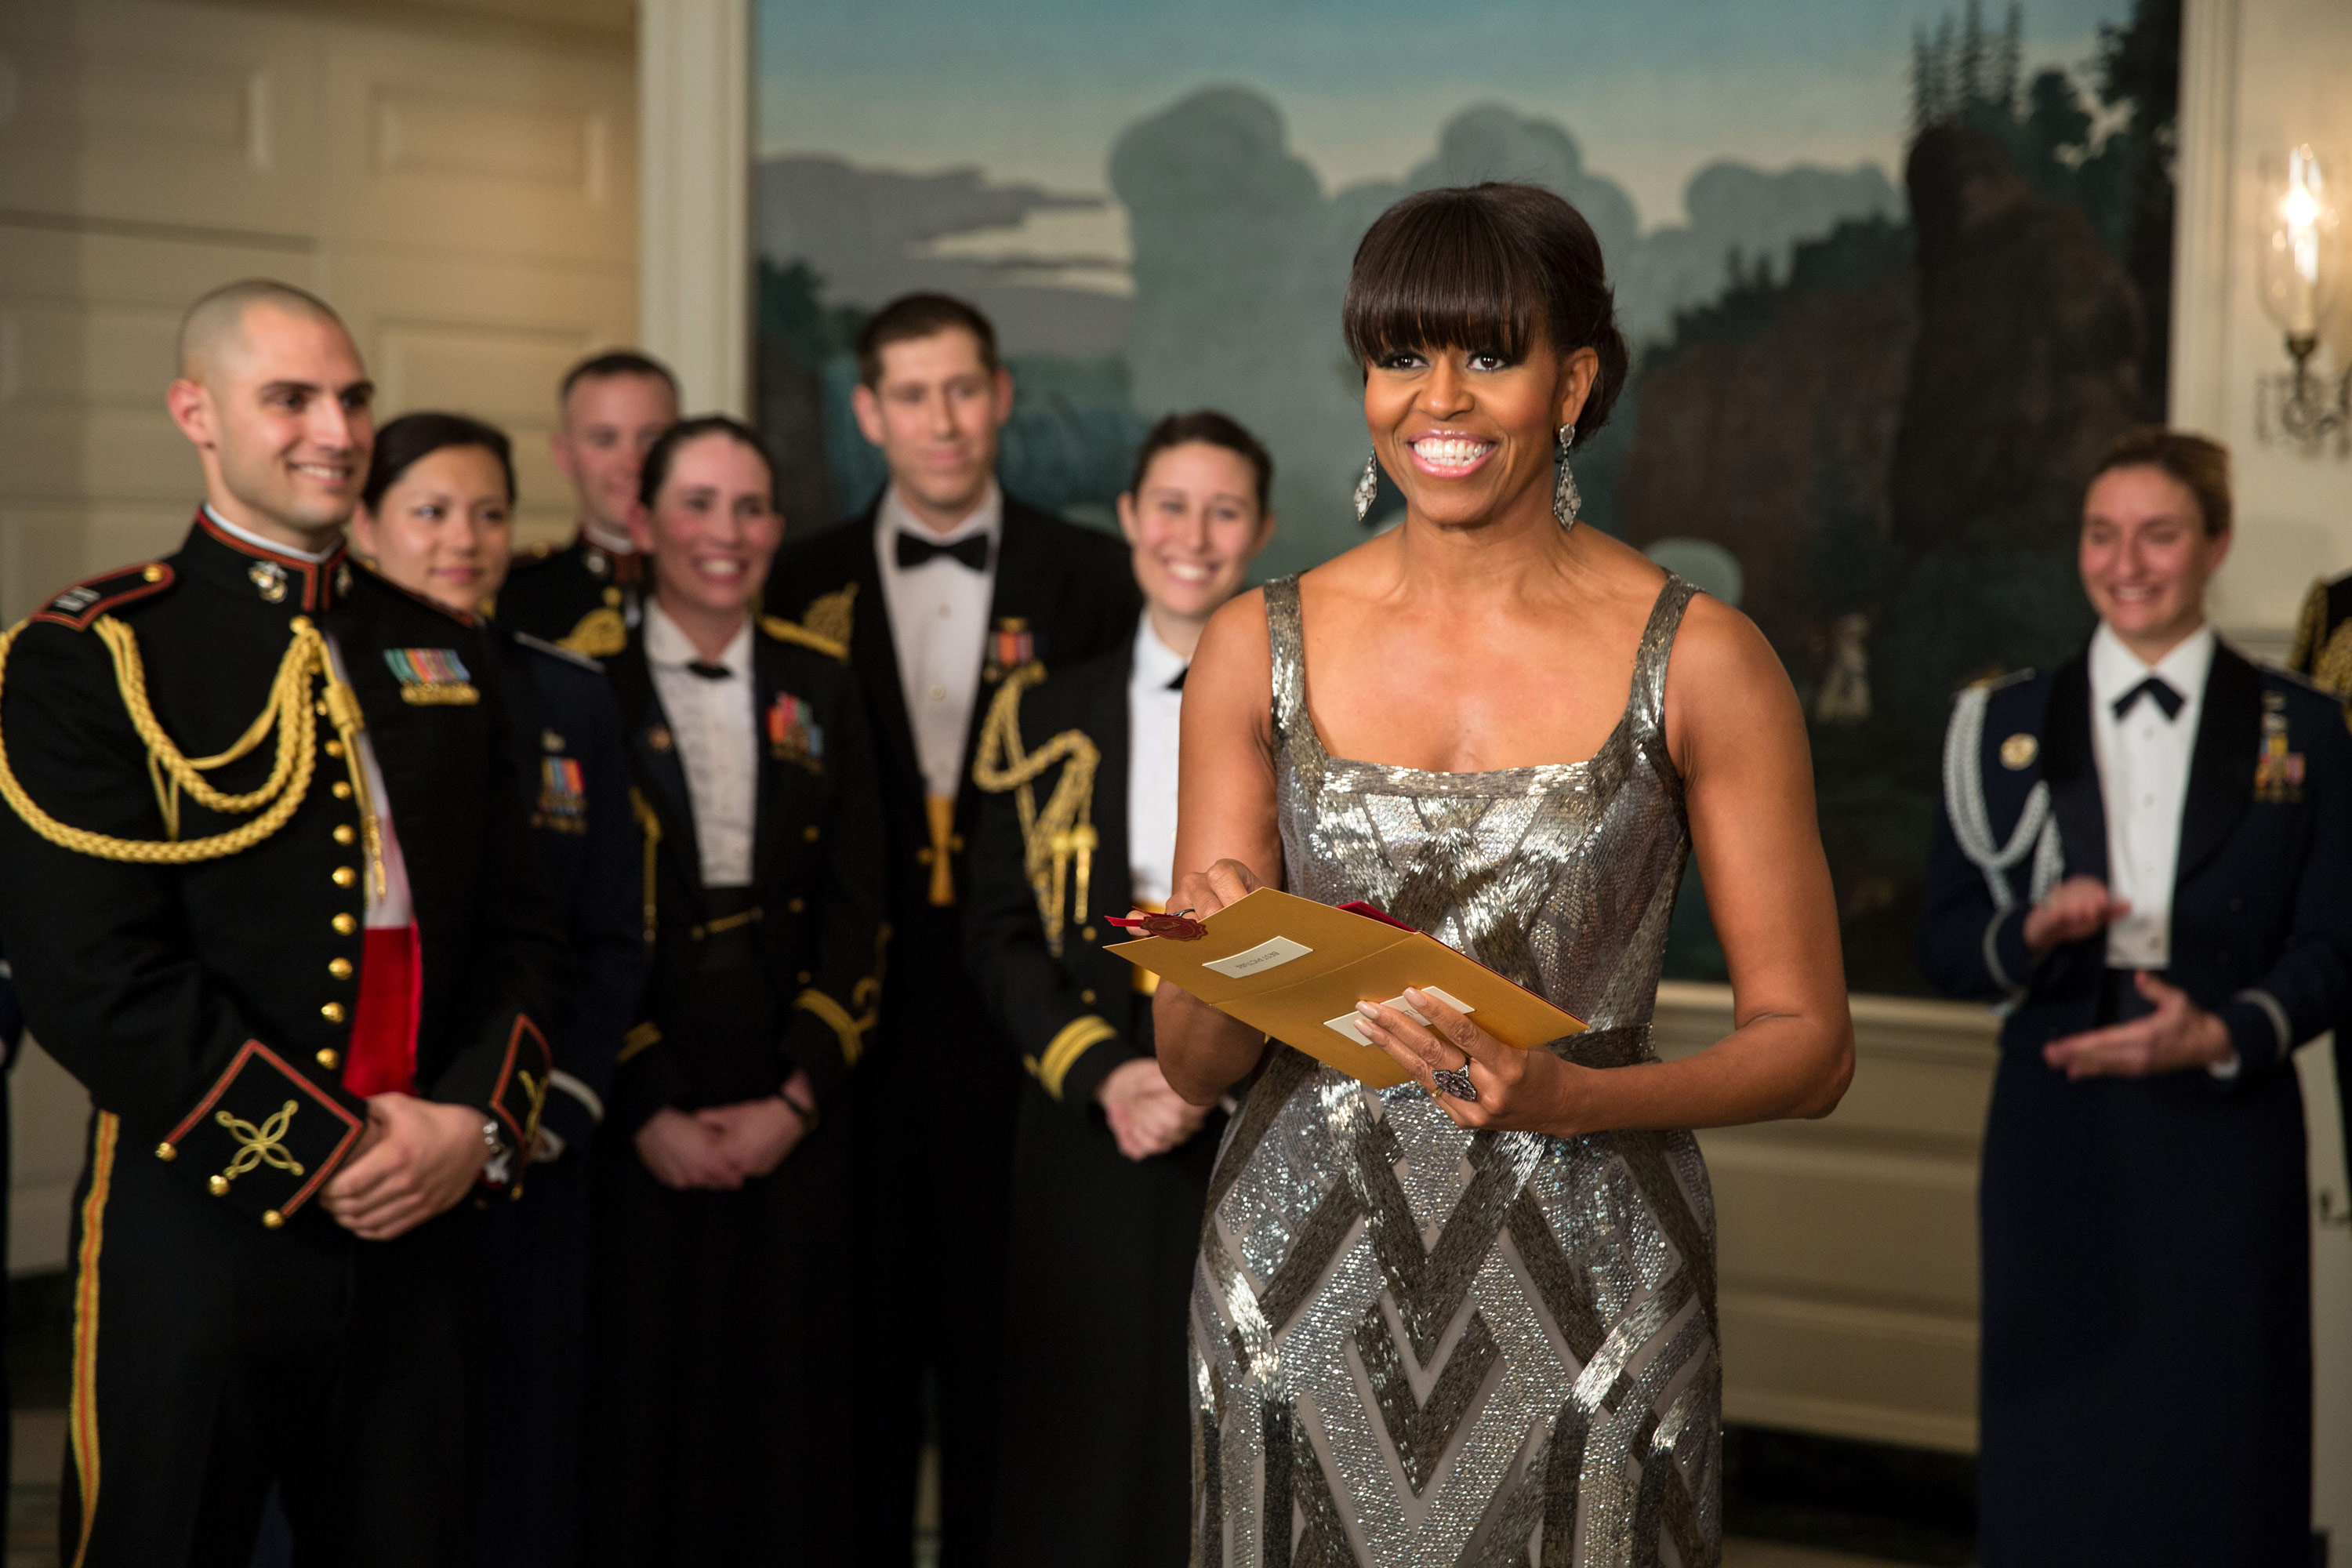 First_Lady_Michelle_Obama_announces_the_Best_Picture_Oscar_to_Argo